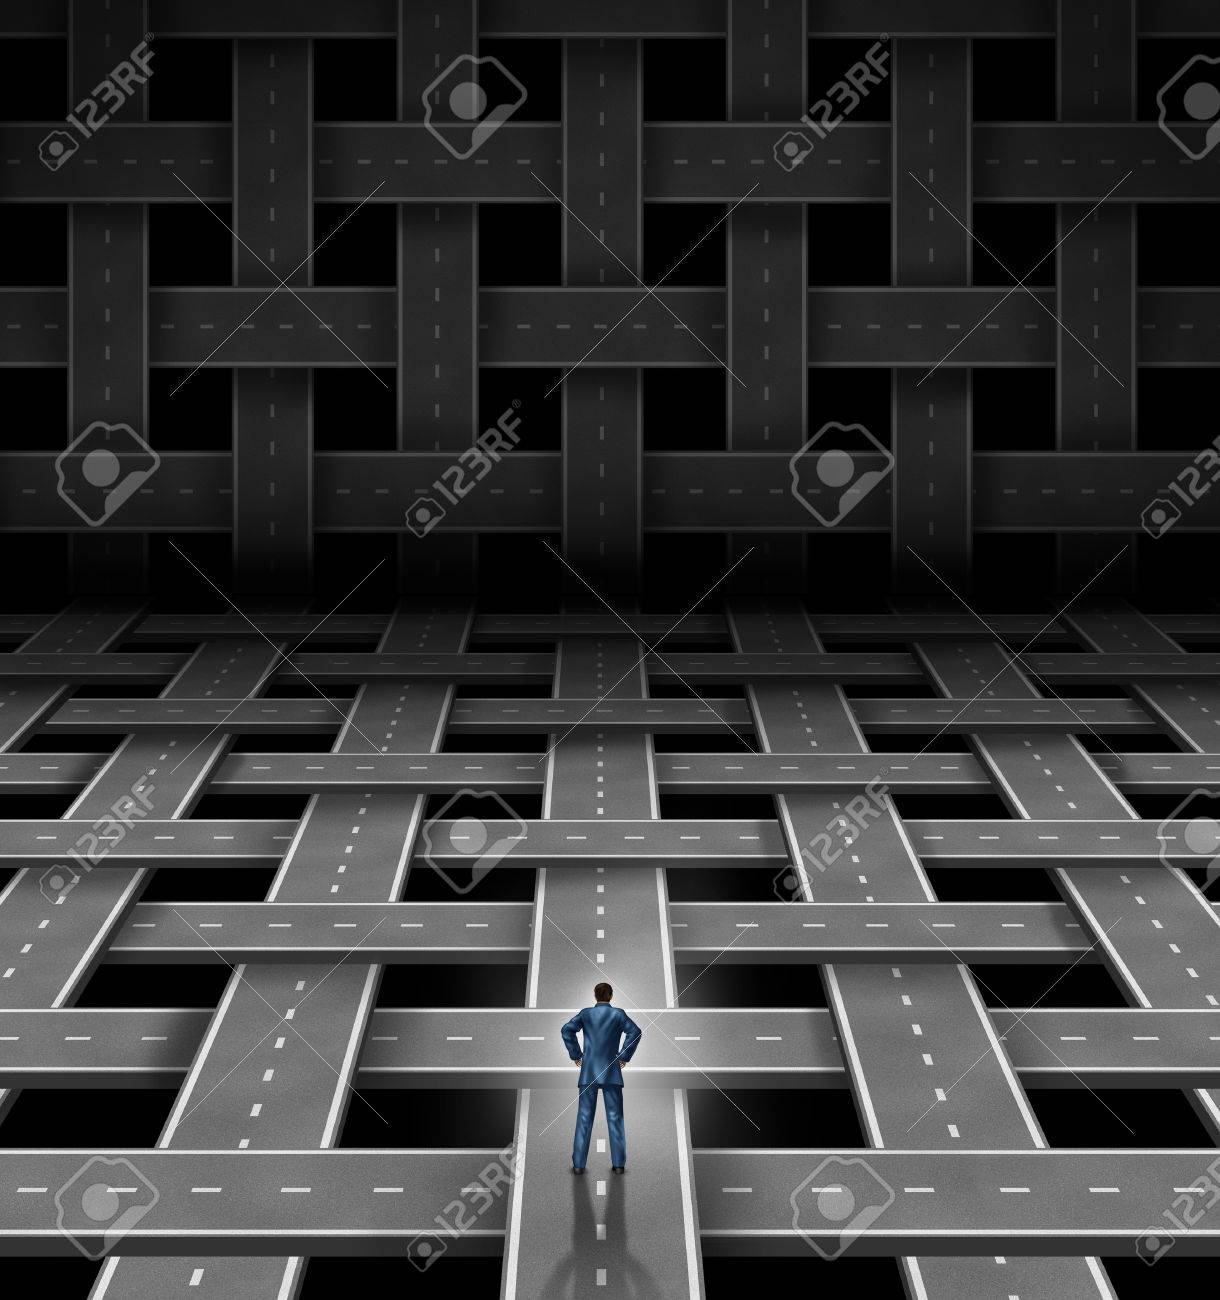 organisational images stock pictures royalty organisational network manager concept a businessman leader standing at a crossroad in front of